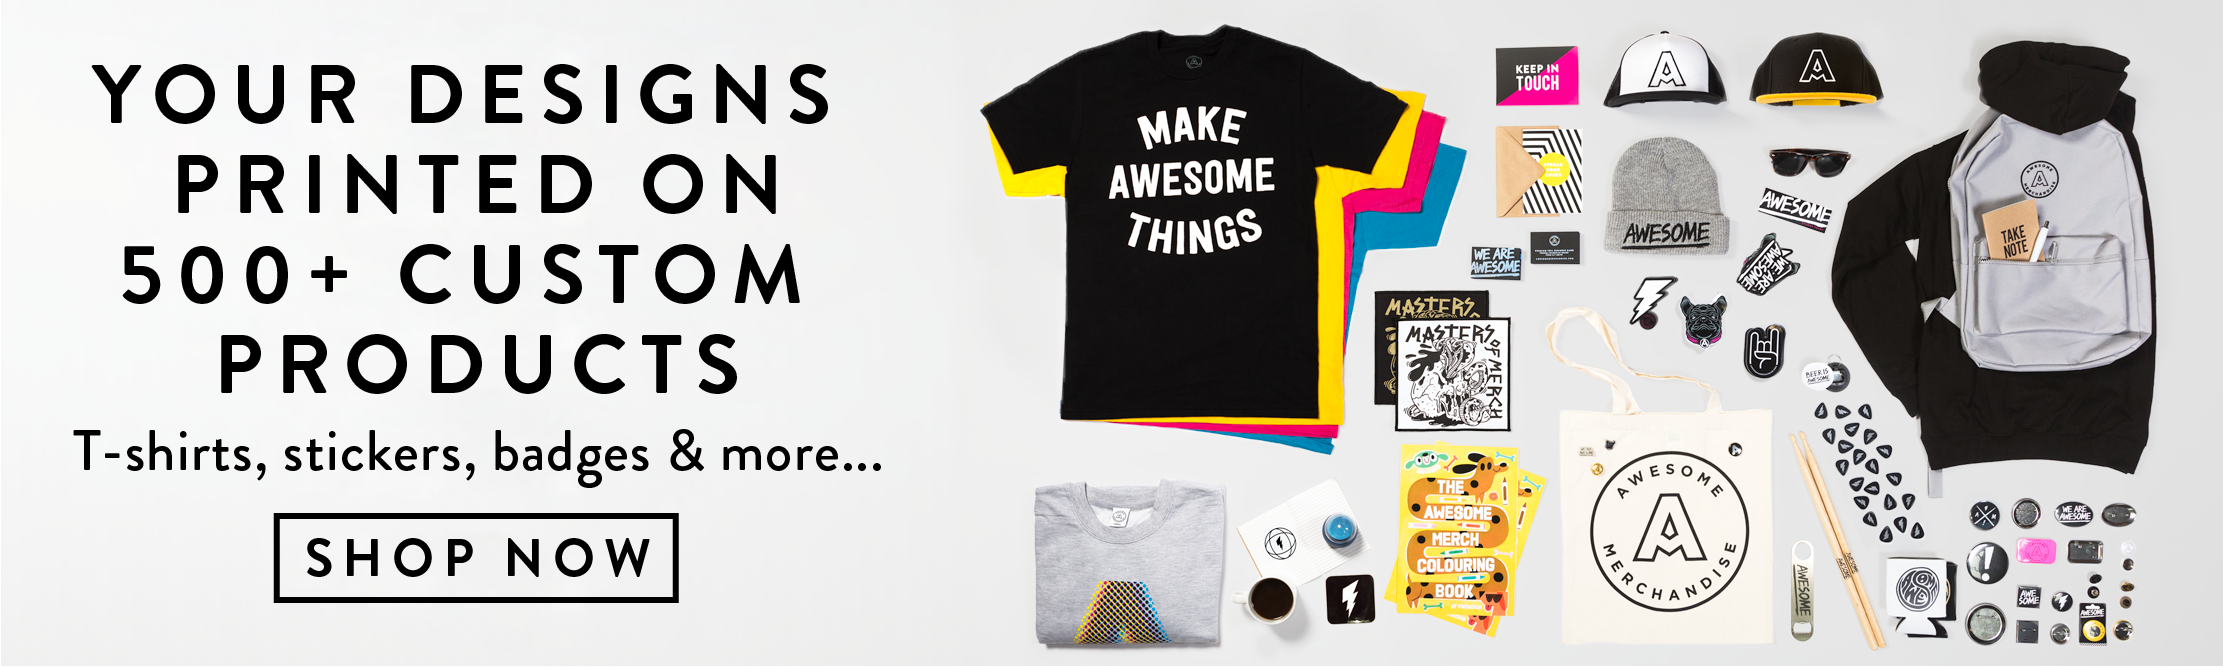 awesome merchandise custom print t shirts badges much more